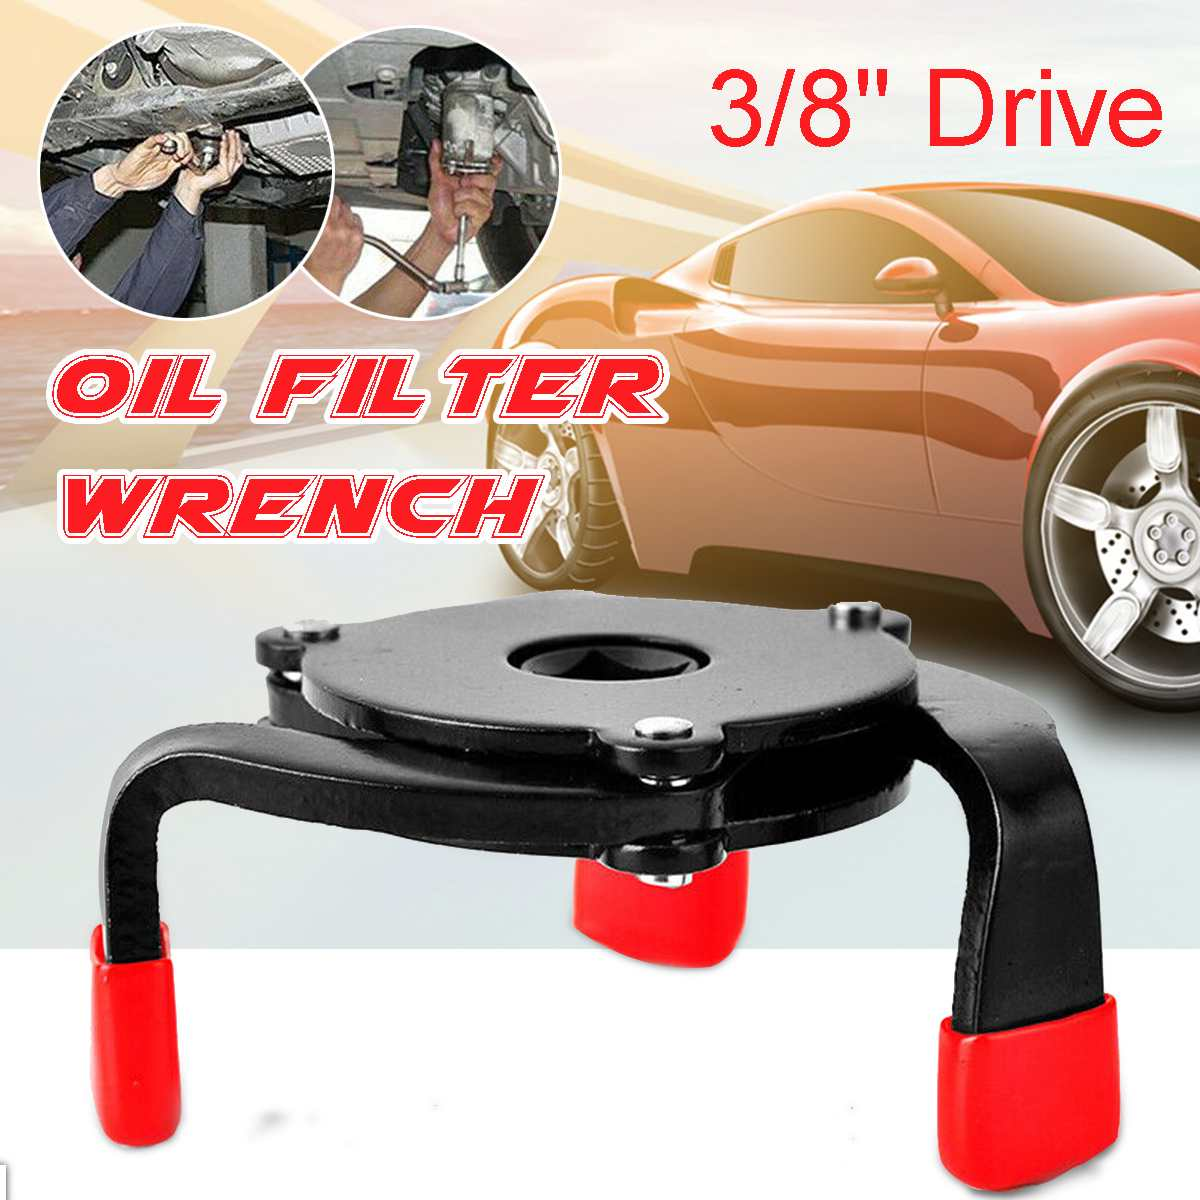 One Way 3 Jaw Universal Oil Filter Wrench Change Machine Oil Grid Filter Wrench Anti-Slip Edging Oil Core Disassembly Ball Head